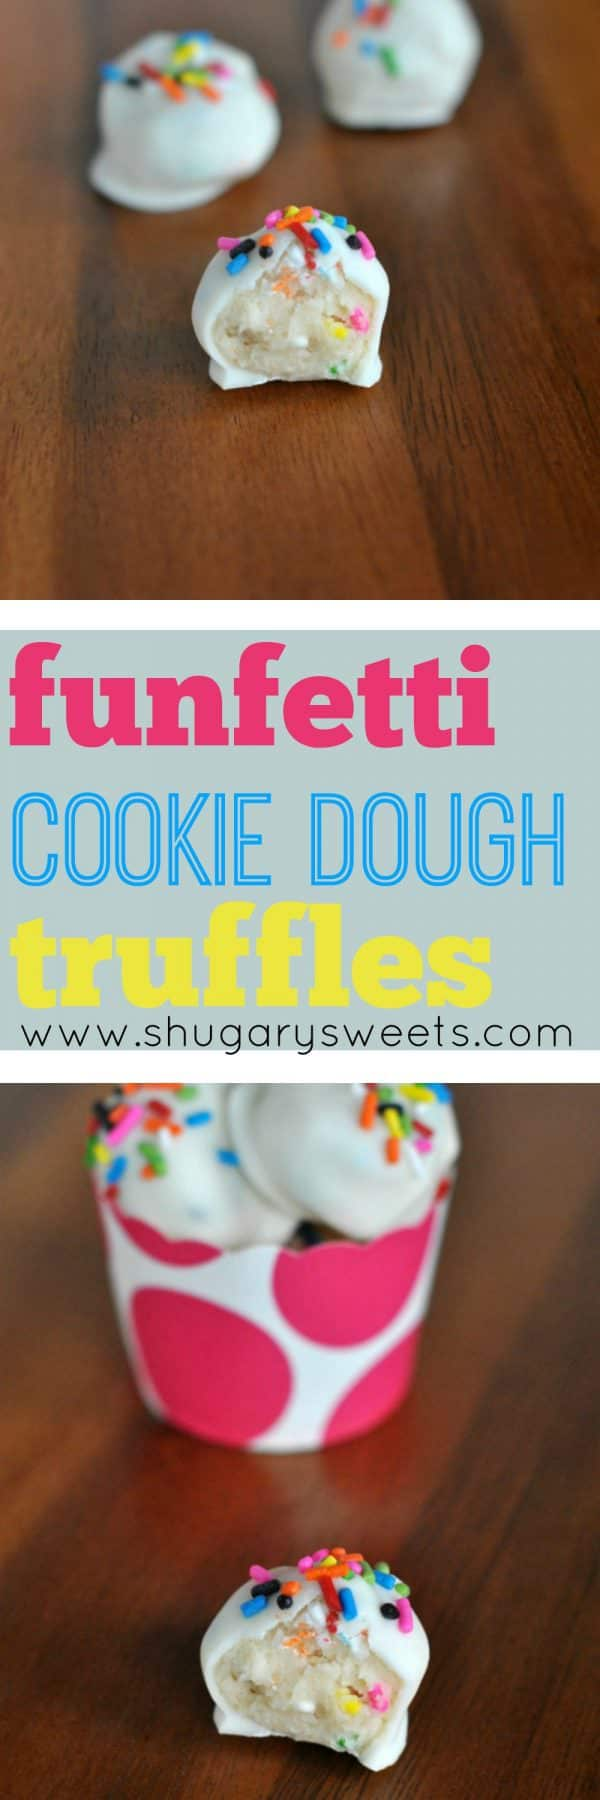 Funfetti Cookie dough in a truffle. It doesn't get much better!